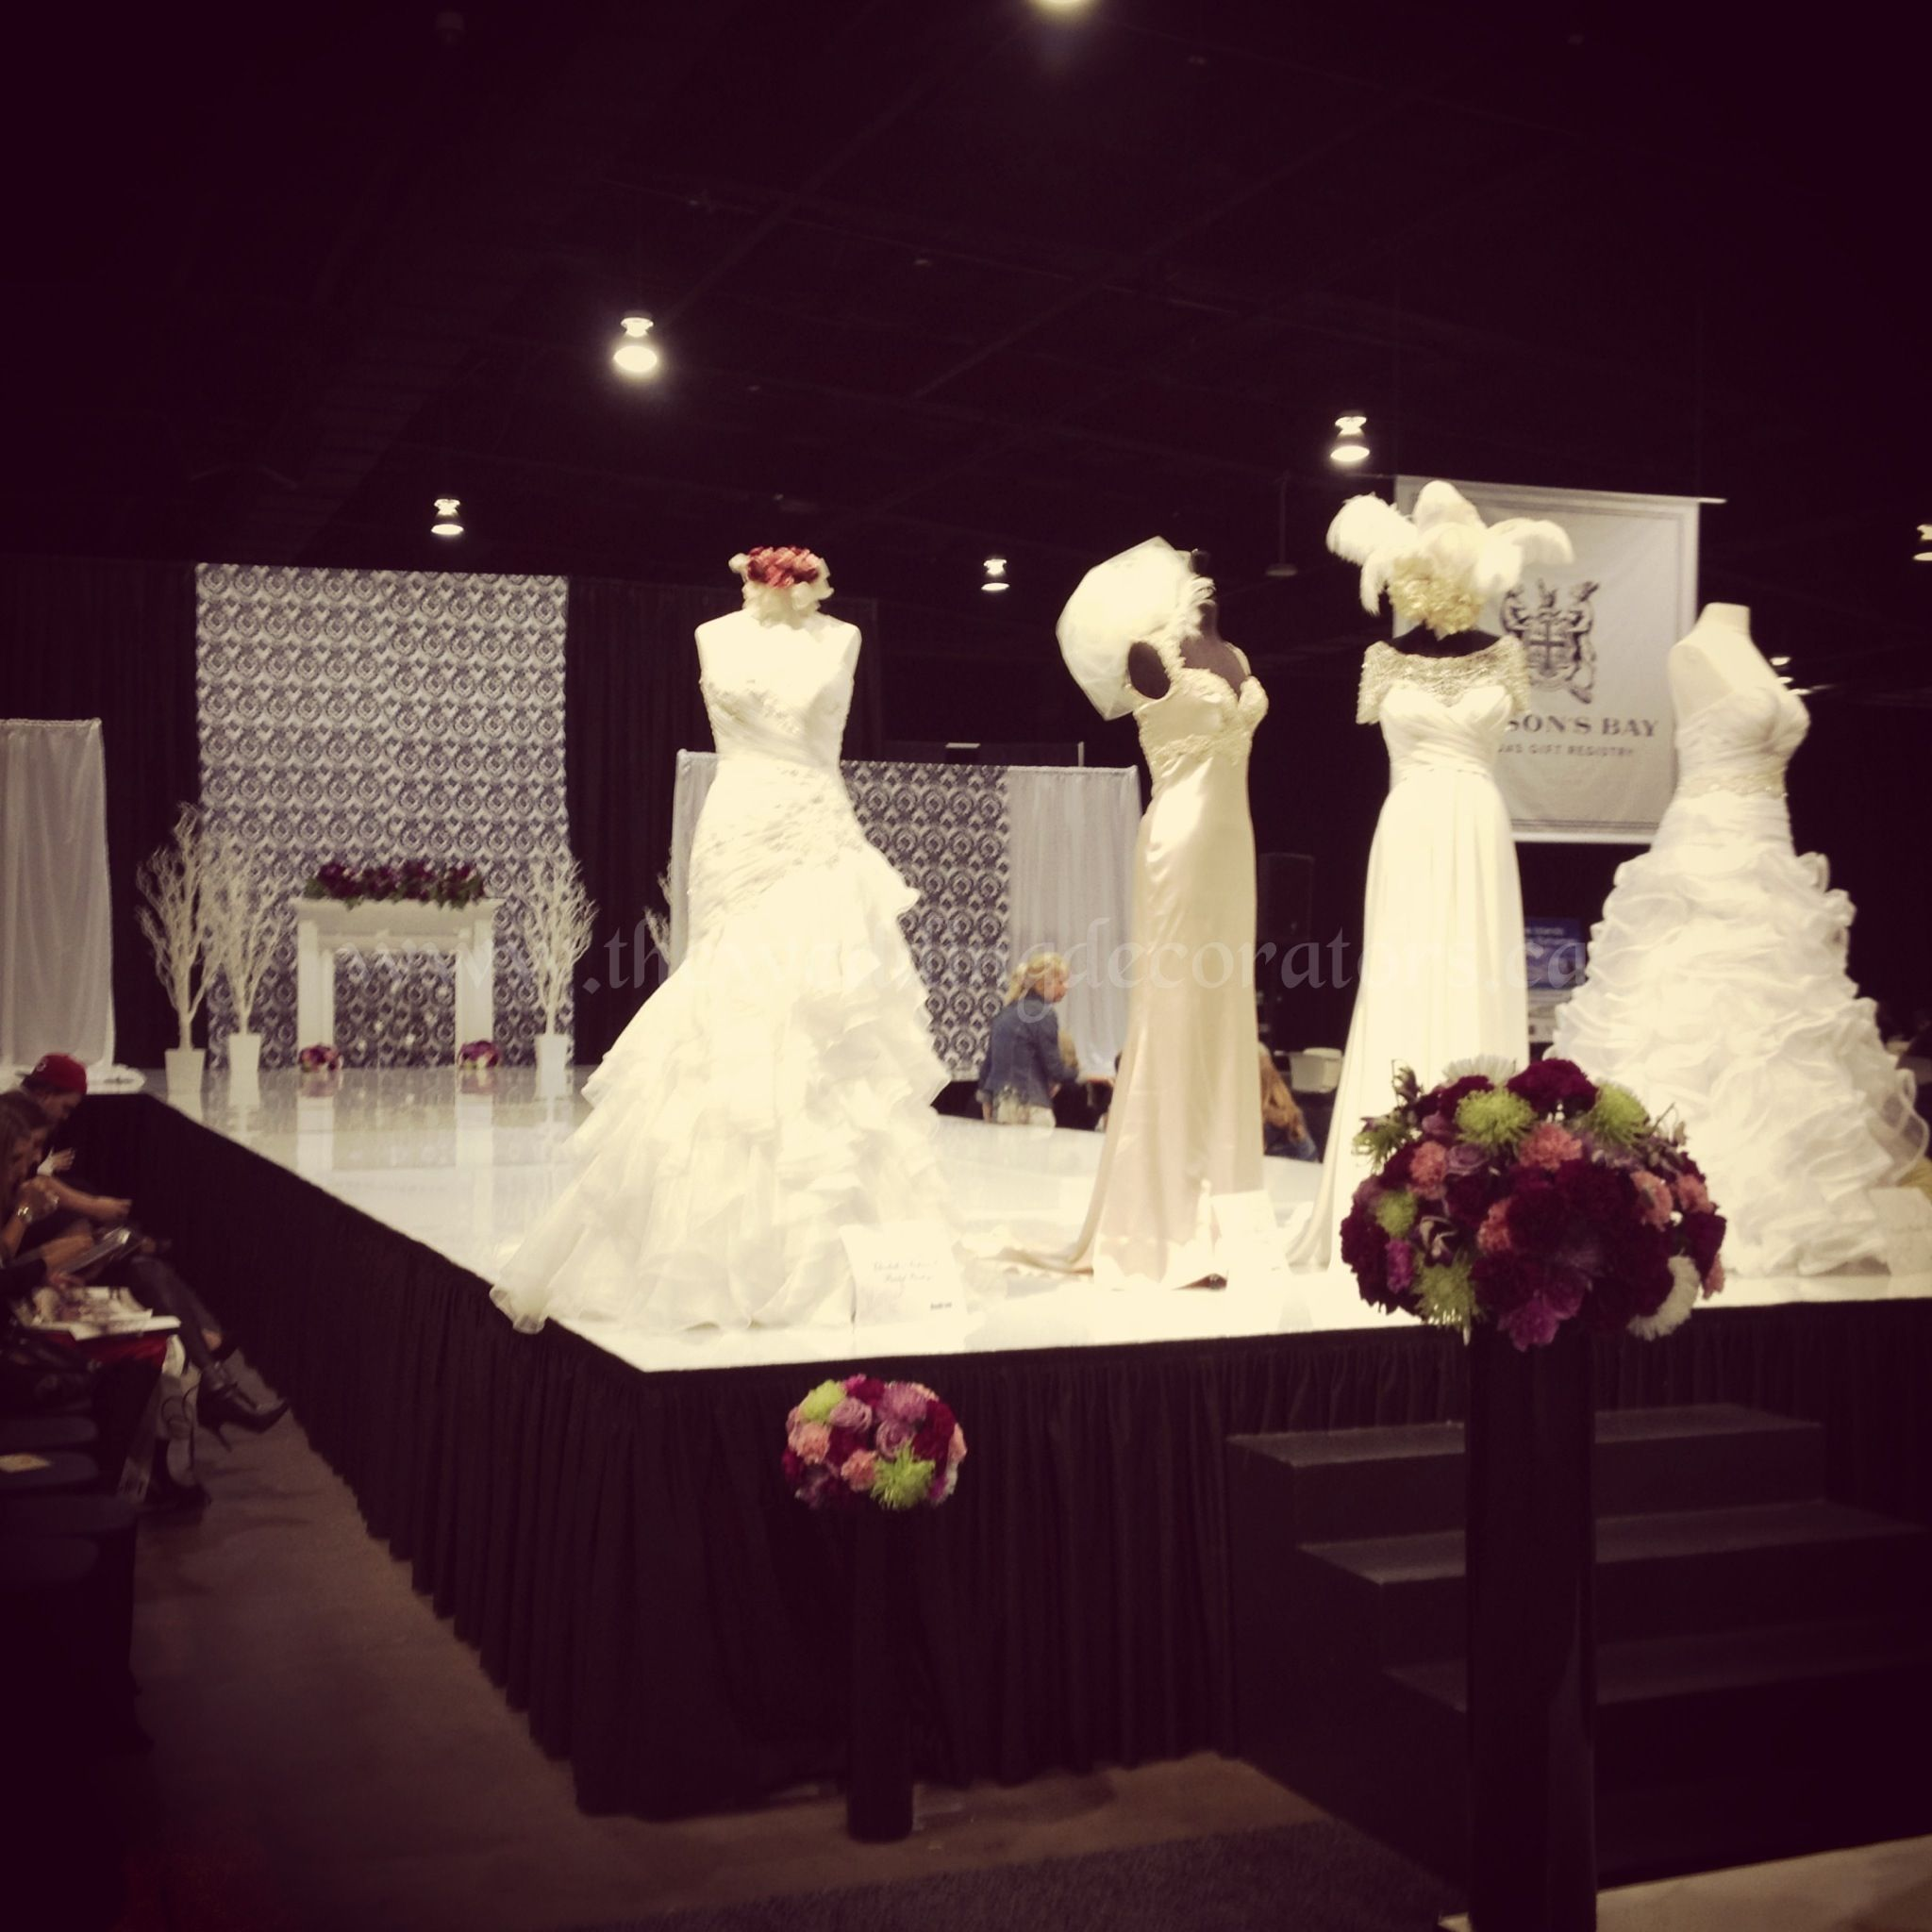 Wedding decorations background  Damask decor  Damask Decorations and Weddings  Pinterest  Damask